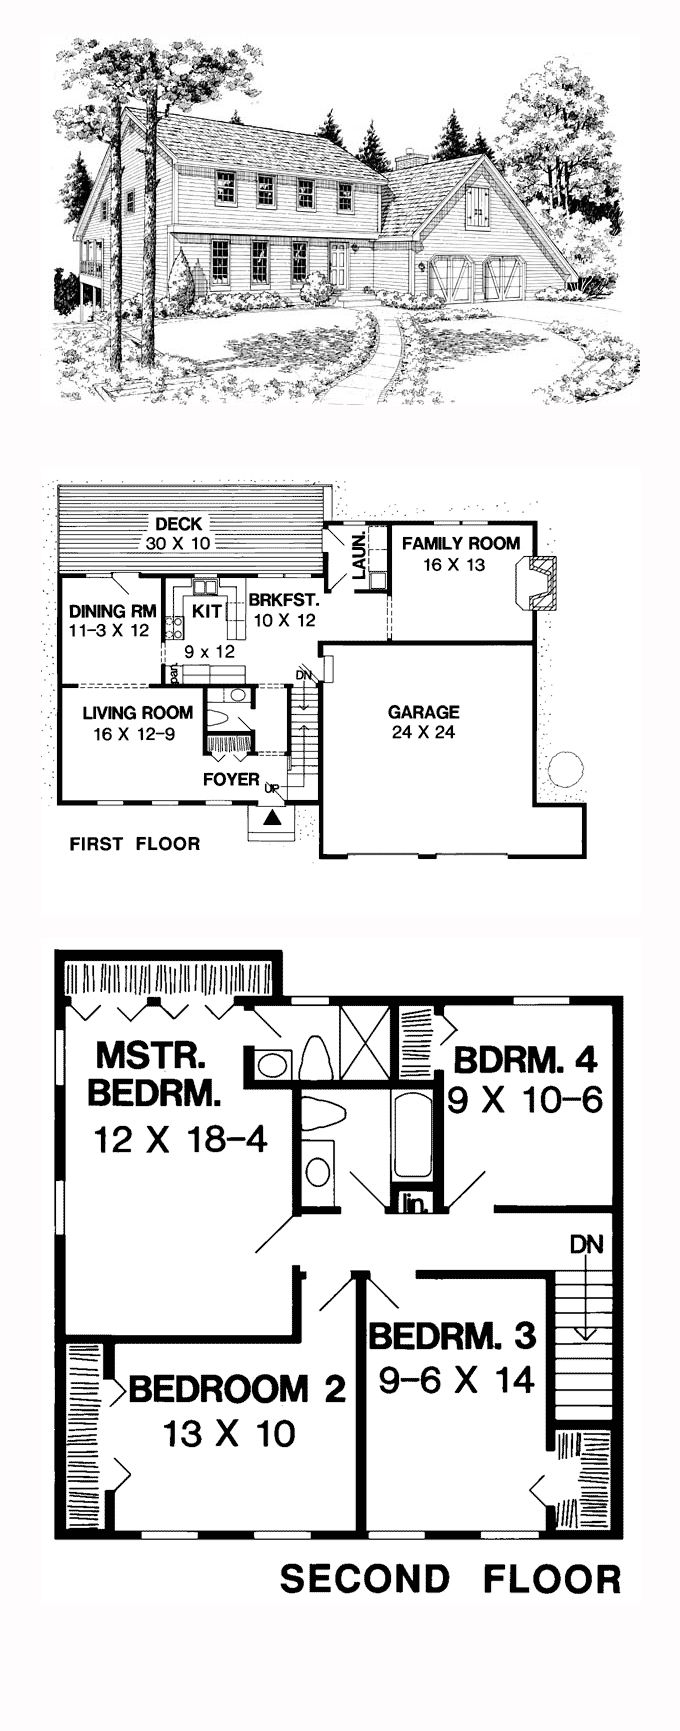 Saltbox Style House Plan 10829 With 4 Bed 3 Bath 2 Car Garage House Plans How To Plan Saltbox Houses